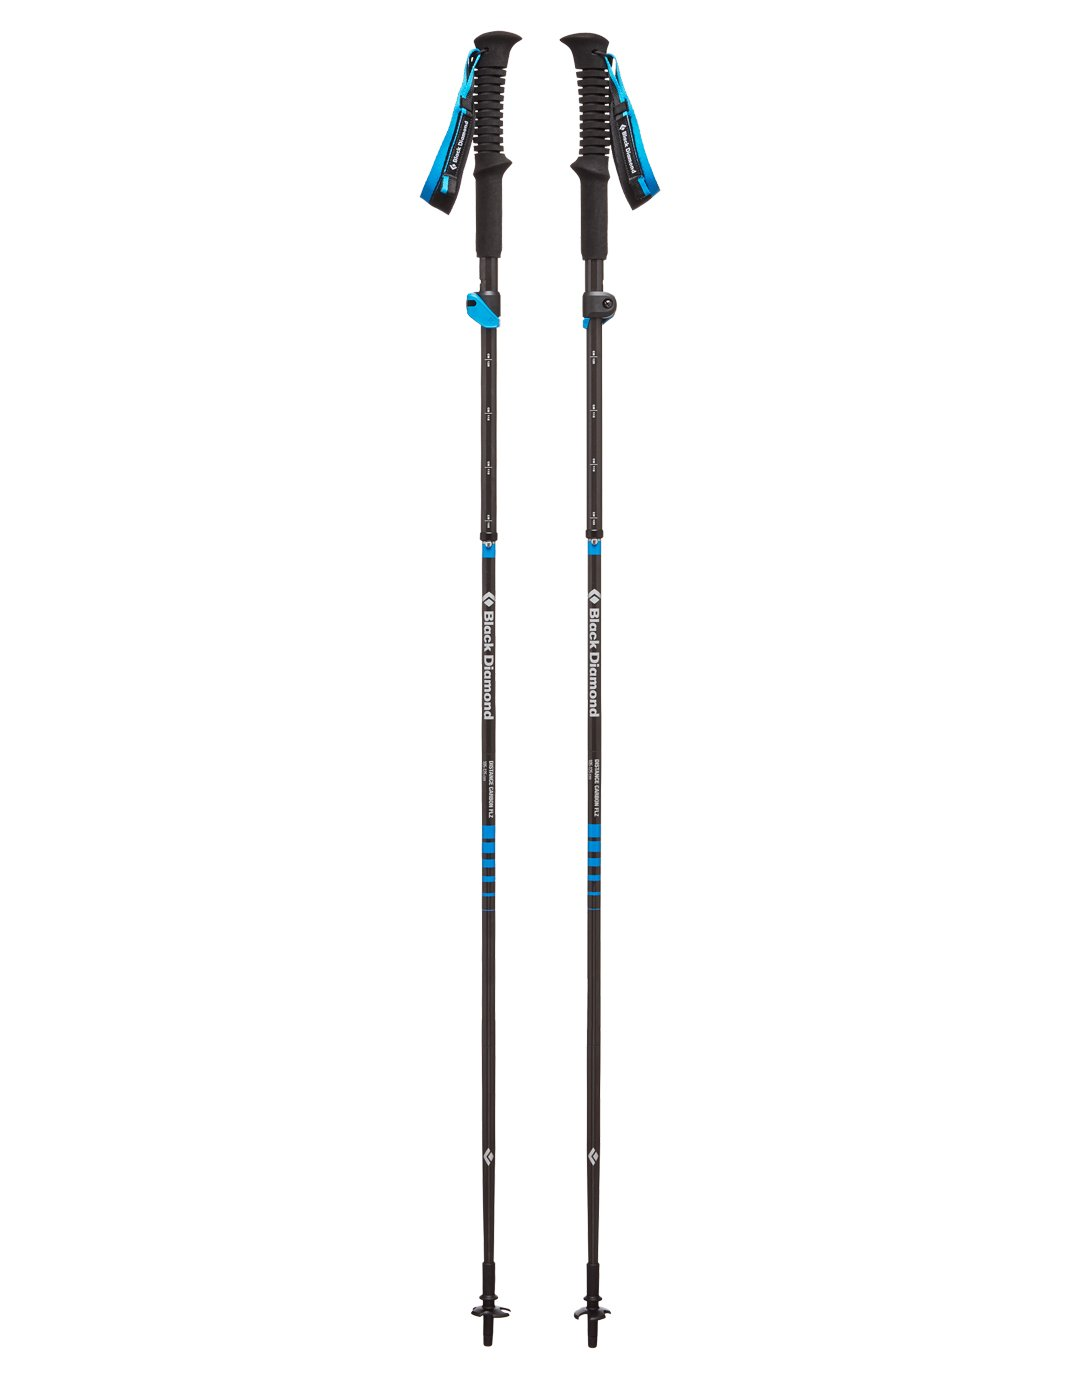 Distance Carbon FLZ Walking Poles - 95 to 110cm